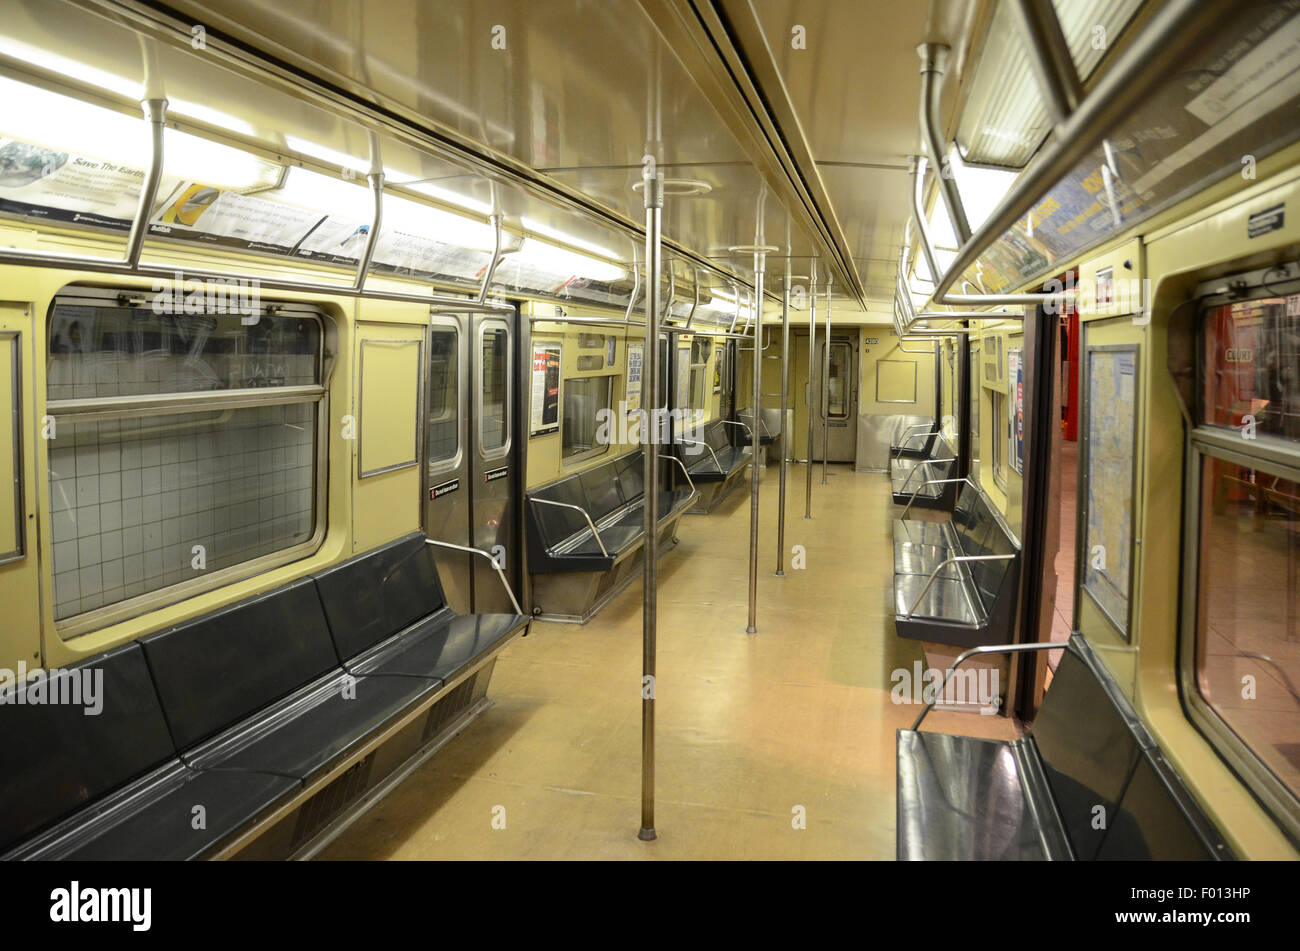 New York Transit Museum carriage subway vintage subway 1968; yellow livery vintage adverts hand rails grey gray Stock Photo